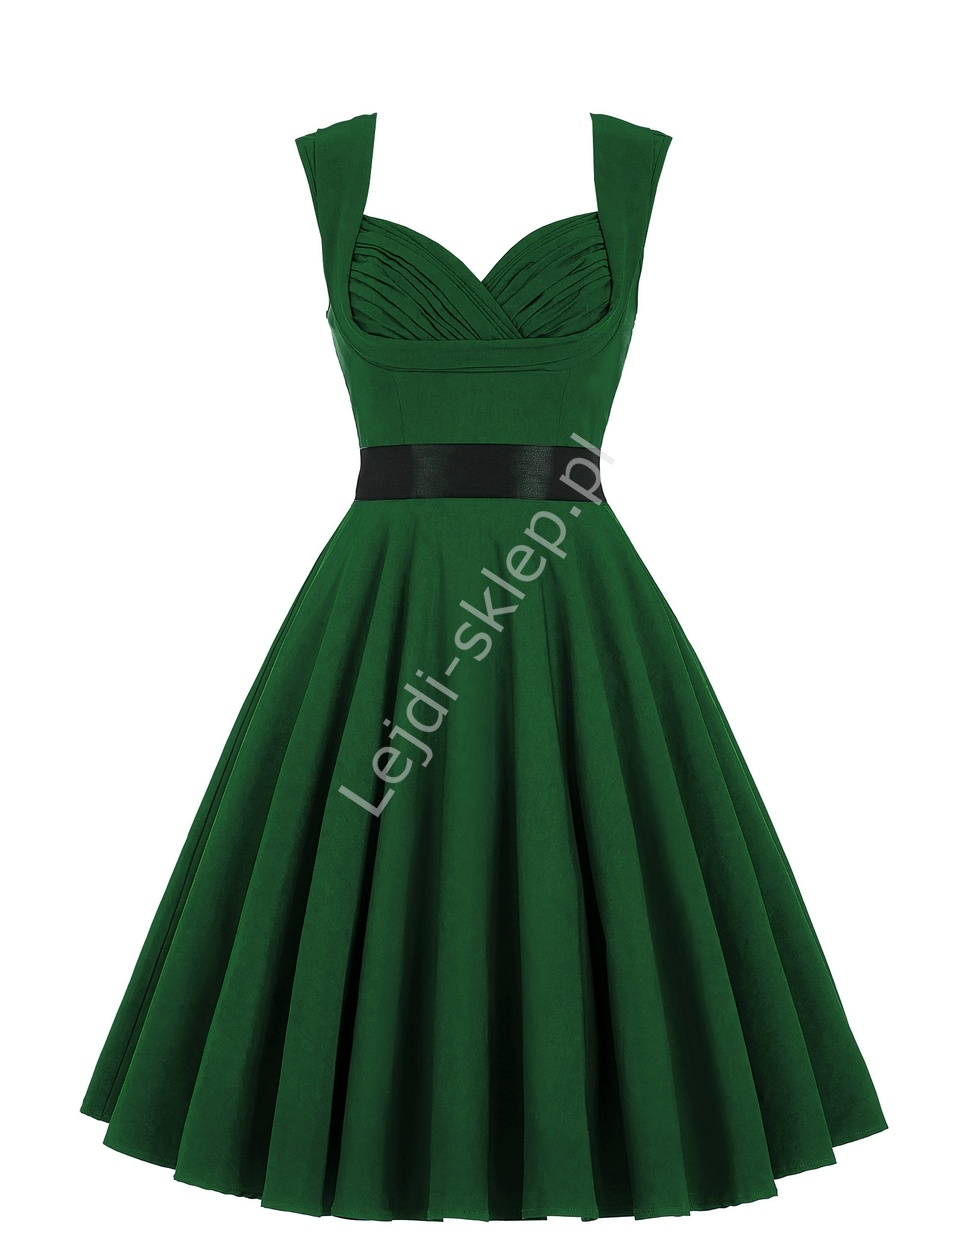 butelkowo zielona bawe niana sukienka pin up green swingdress. Black Bedroom Furniture Sets. Home Design Ideas